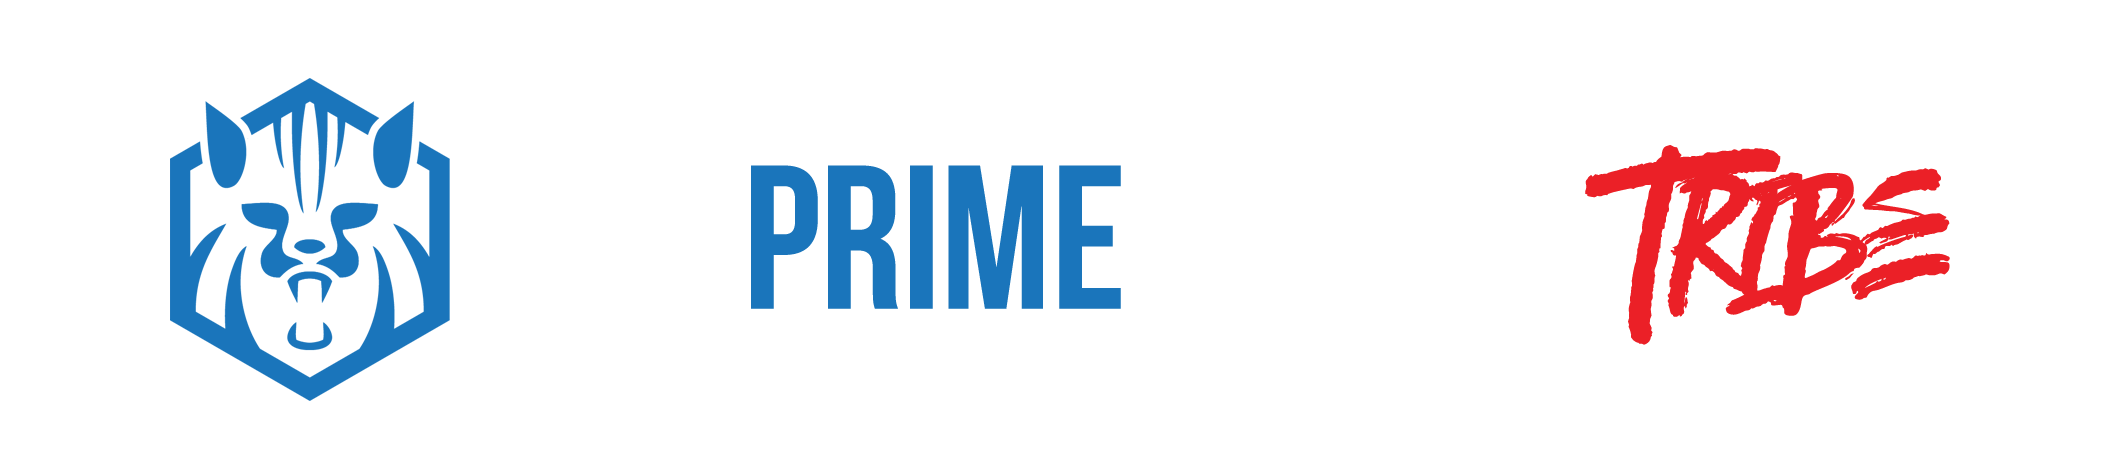 The Prime Human